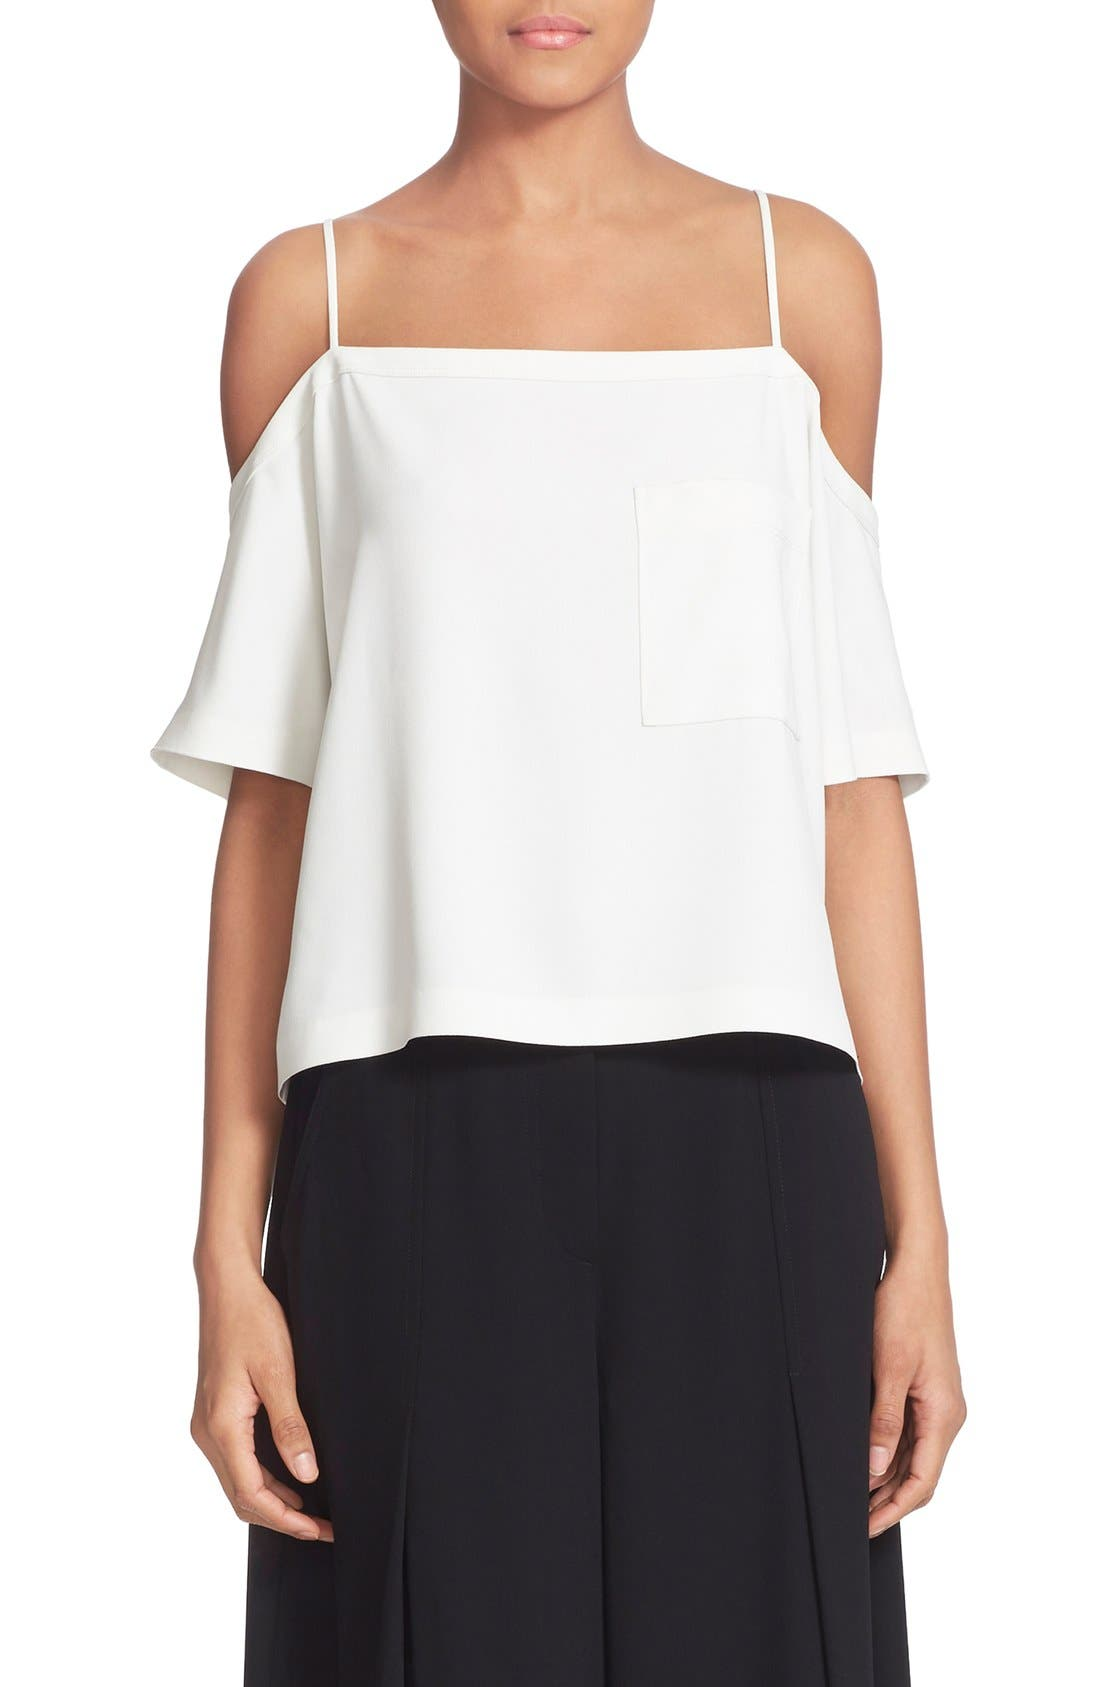 Alternate Image 1 Selected - T by Alexander Wang Cold Shoulder Crop Top